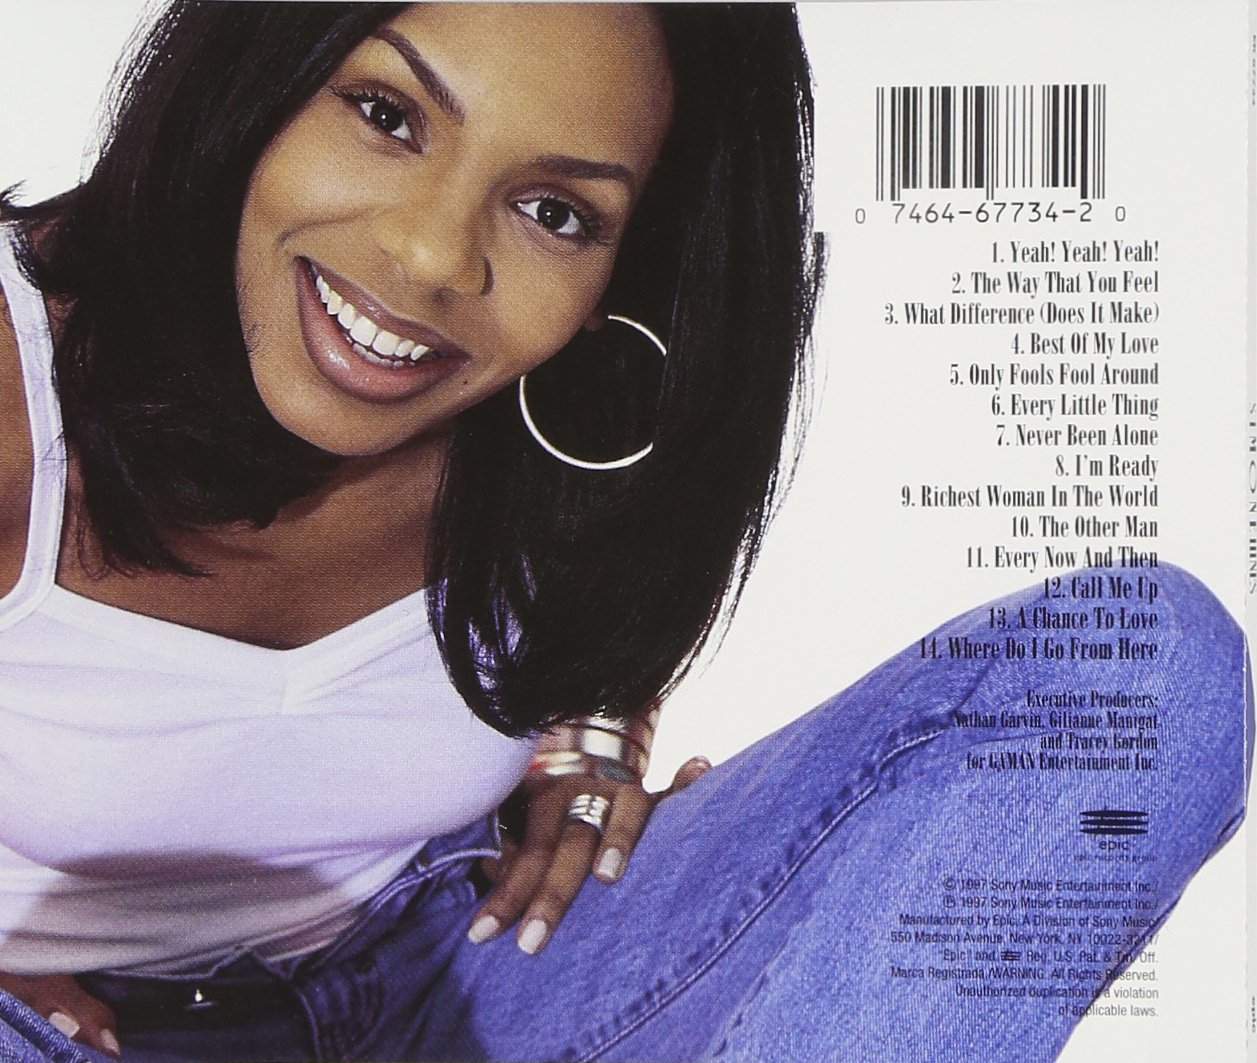 simone hines i will free mp3 download